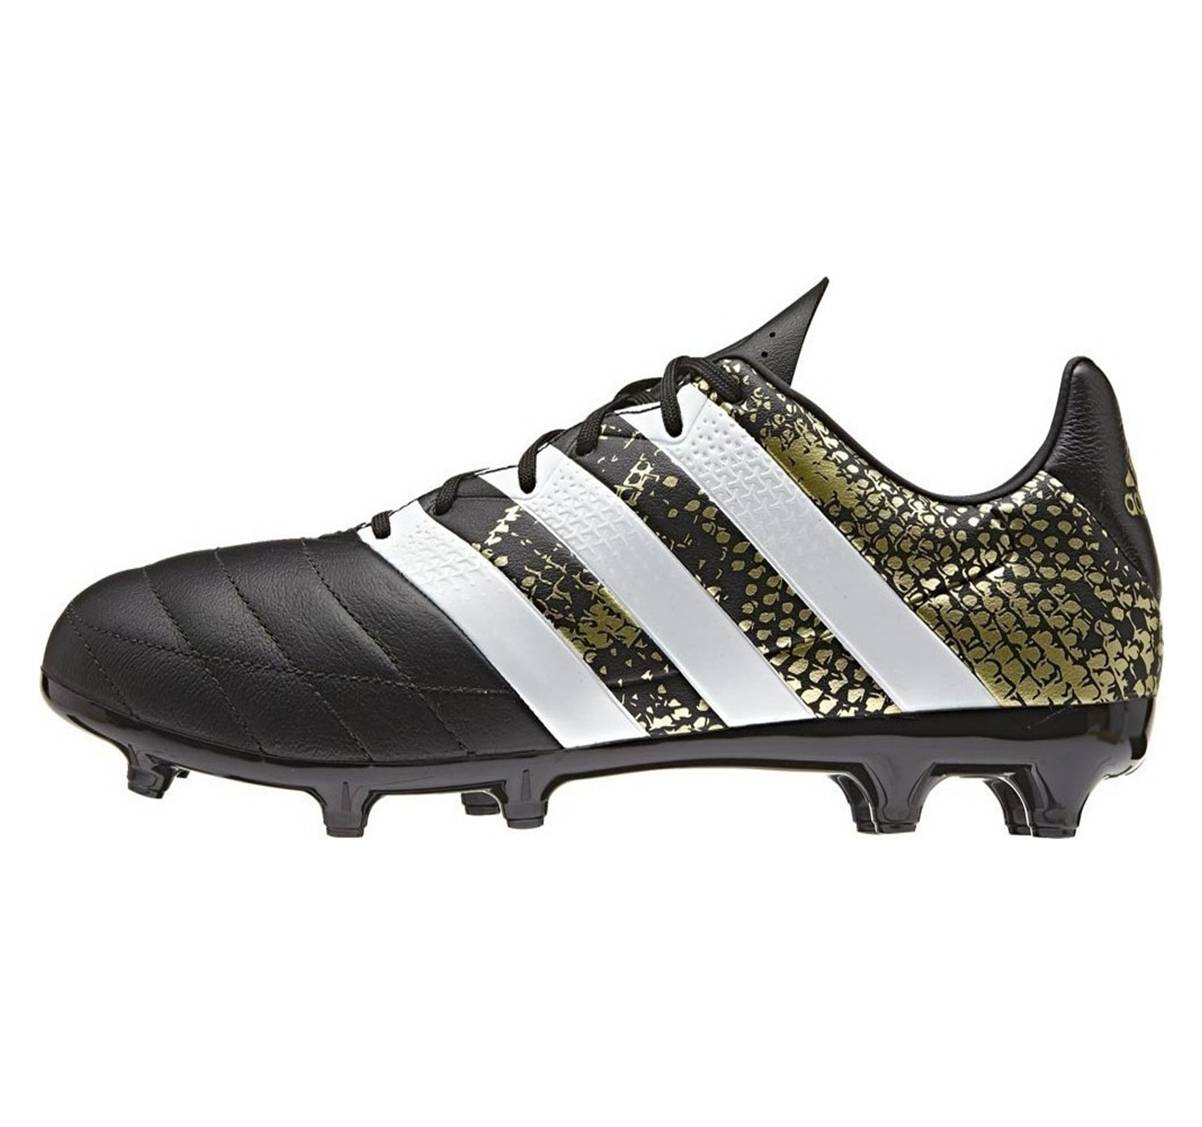 adidas ace 15.2 leather review